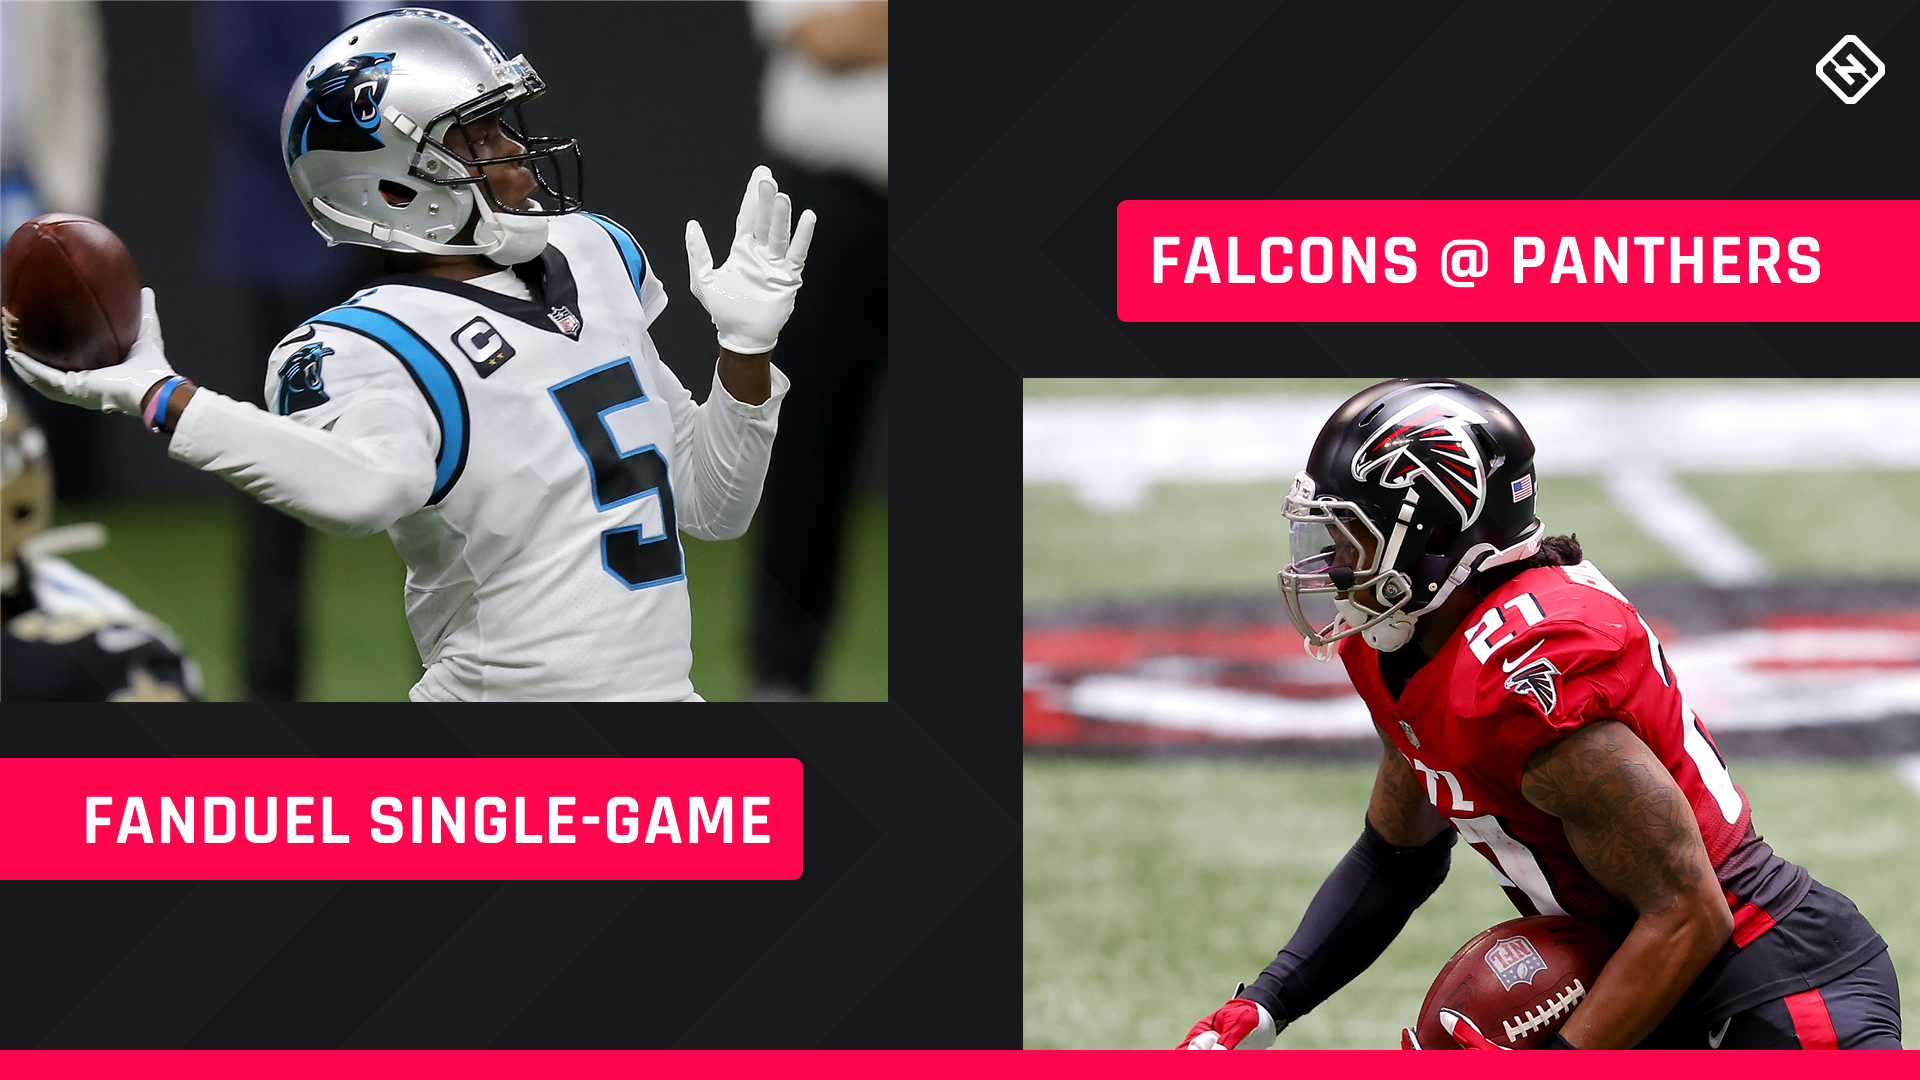 Thursday Night Football FanDuel Picks NFL DFS lineup advice for Week 8 Panthers-Falcons single-game tournaments